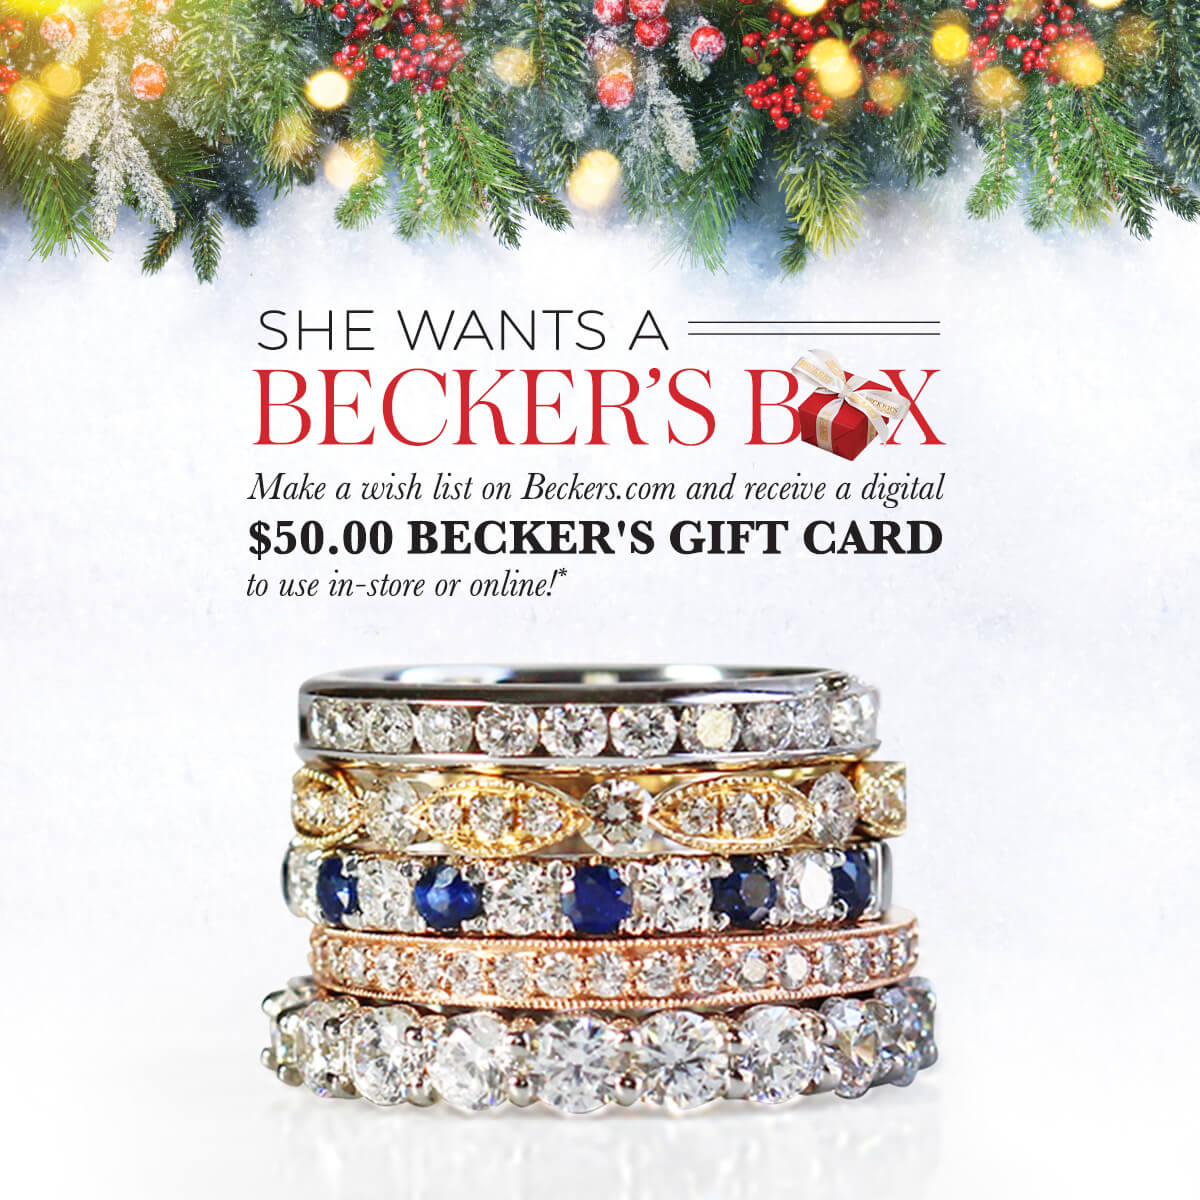 Make a wish list on Beckers.com by 12/23/2018 and receive a $50 Becker's gift card promotion